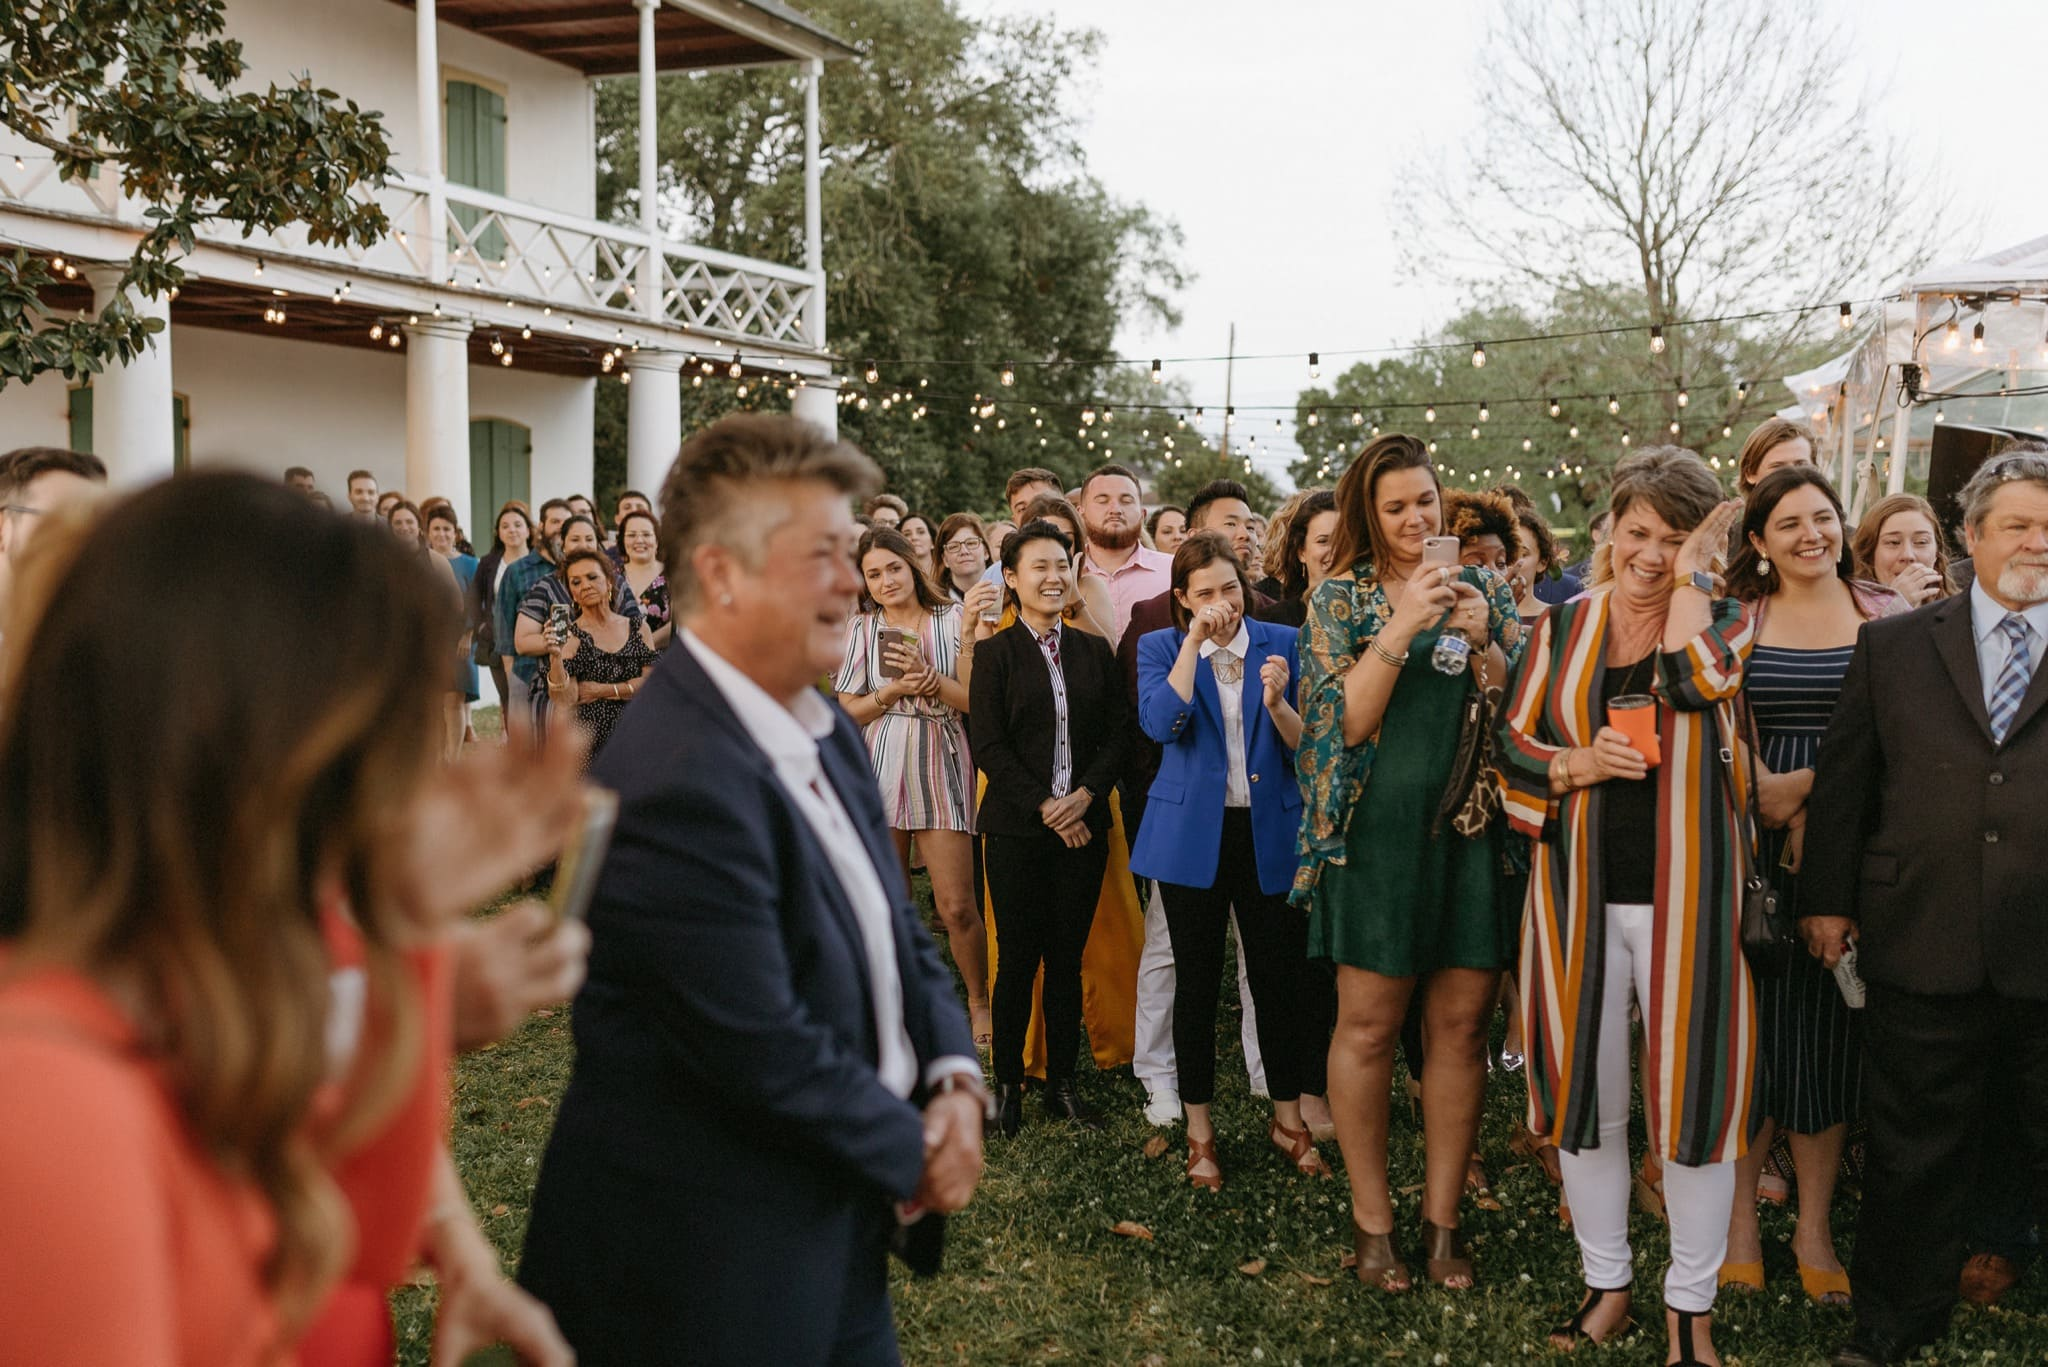 New Orleans Pitot House wedding